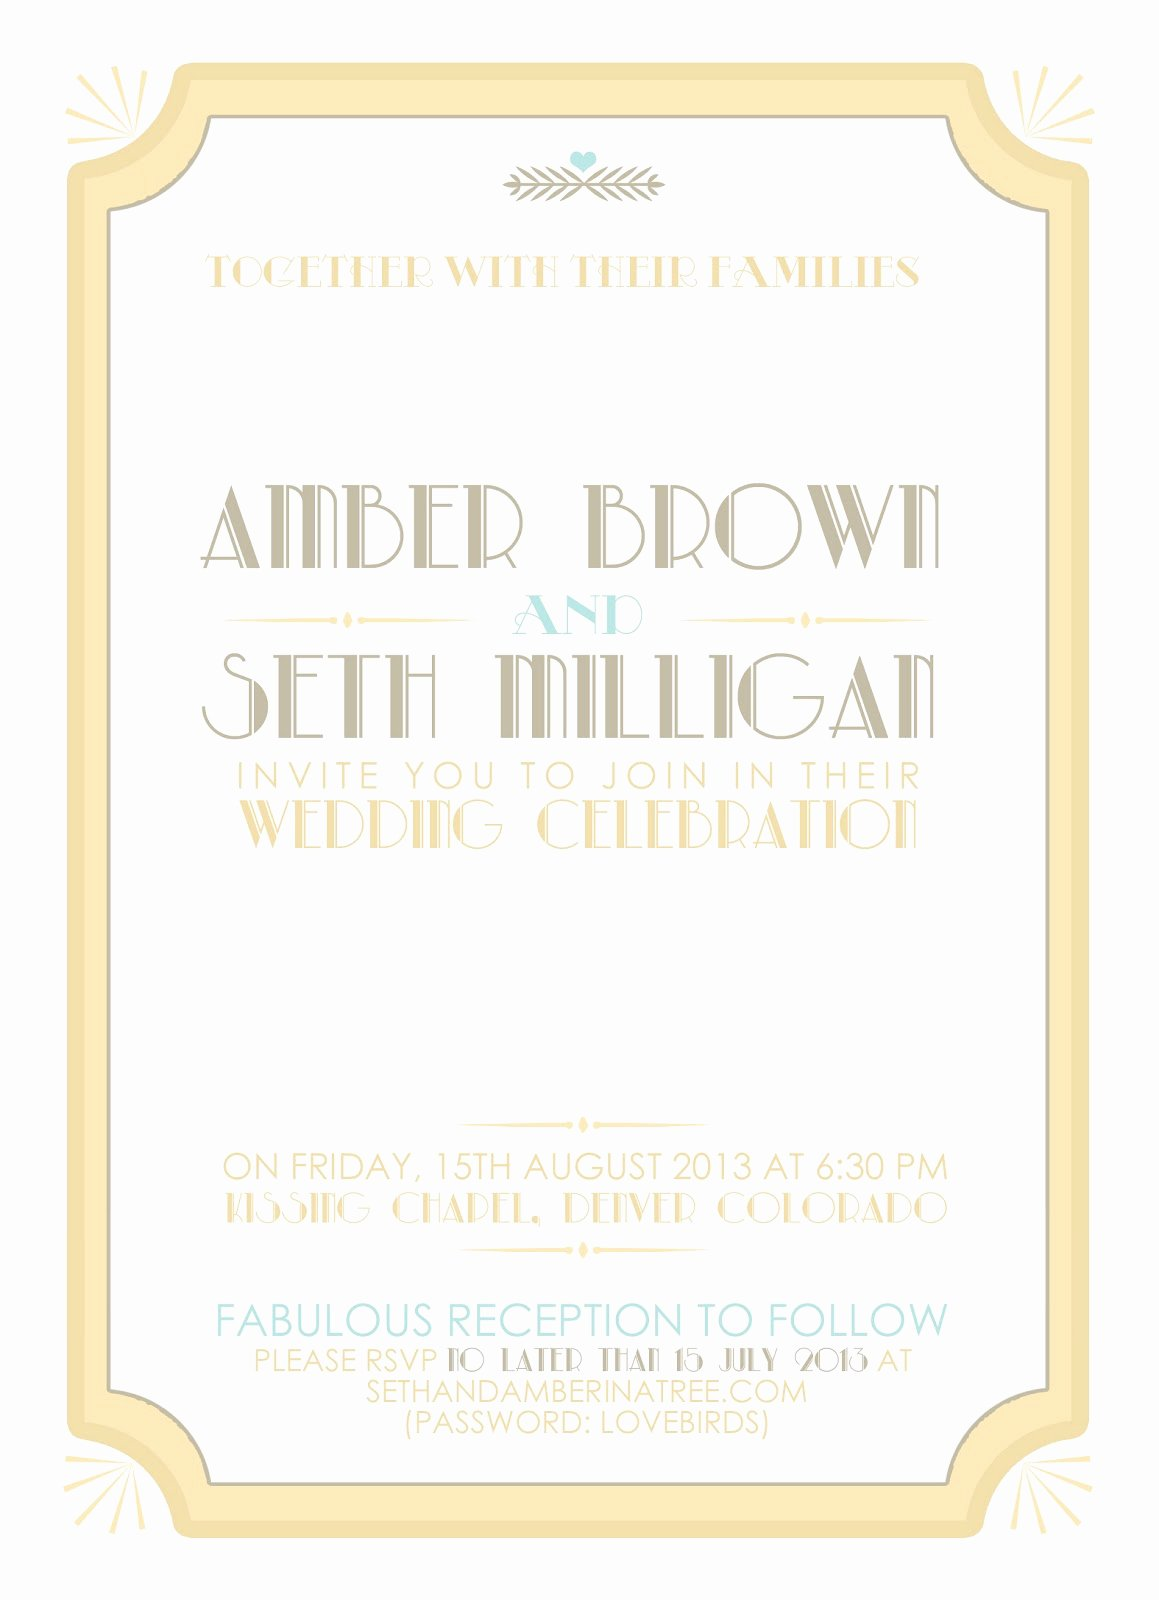 Great Gatsby Ticket Template Beautiful Wording for Oscar Viewing Party Invitations